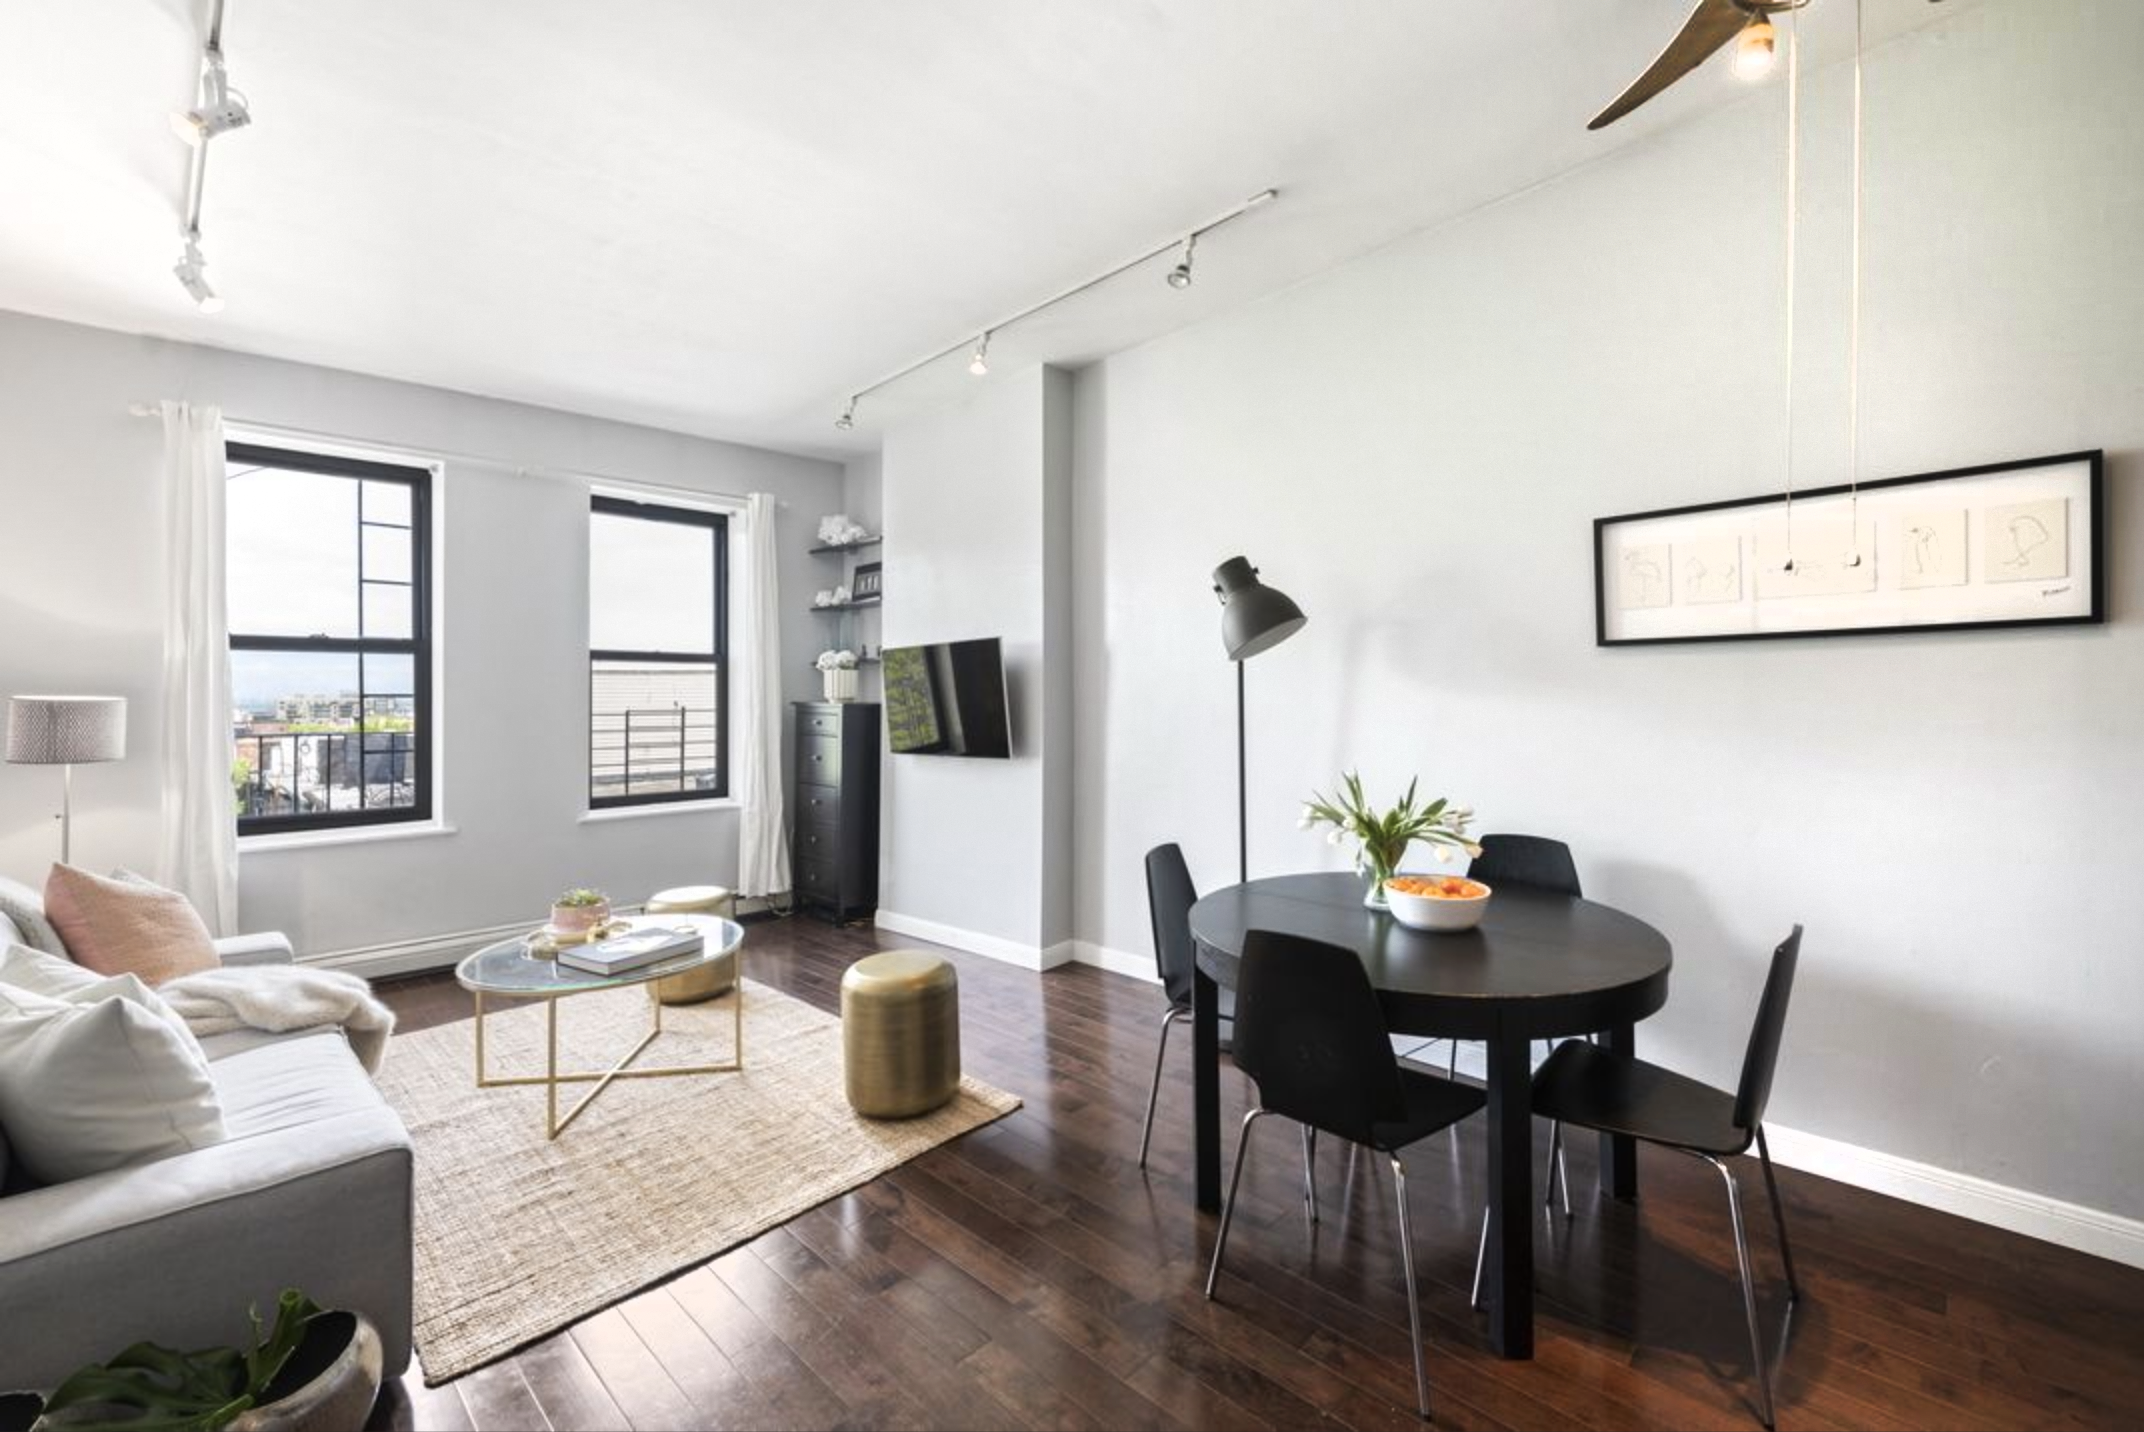 412 Seventh Ave, #4R - Park Slope | Brooklyn    2 Bedroom // 1 Bath Days on Market — 134 Sold Price:    $800,000